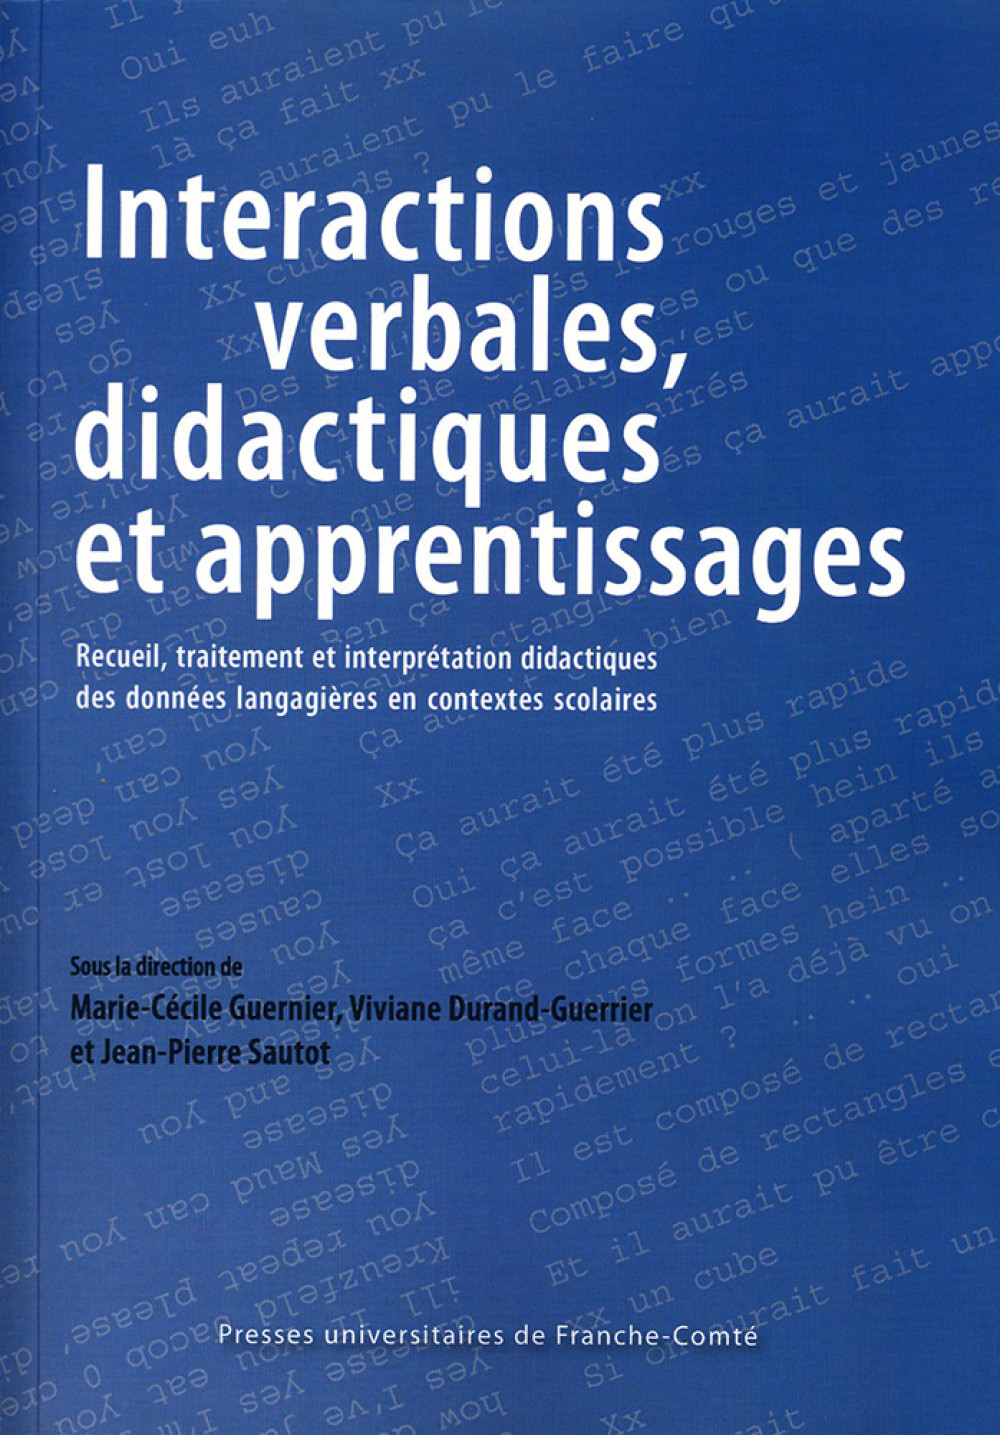 Interactions verbales, didactiques et apprentissages